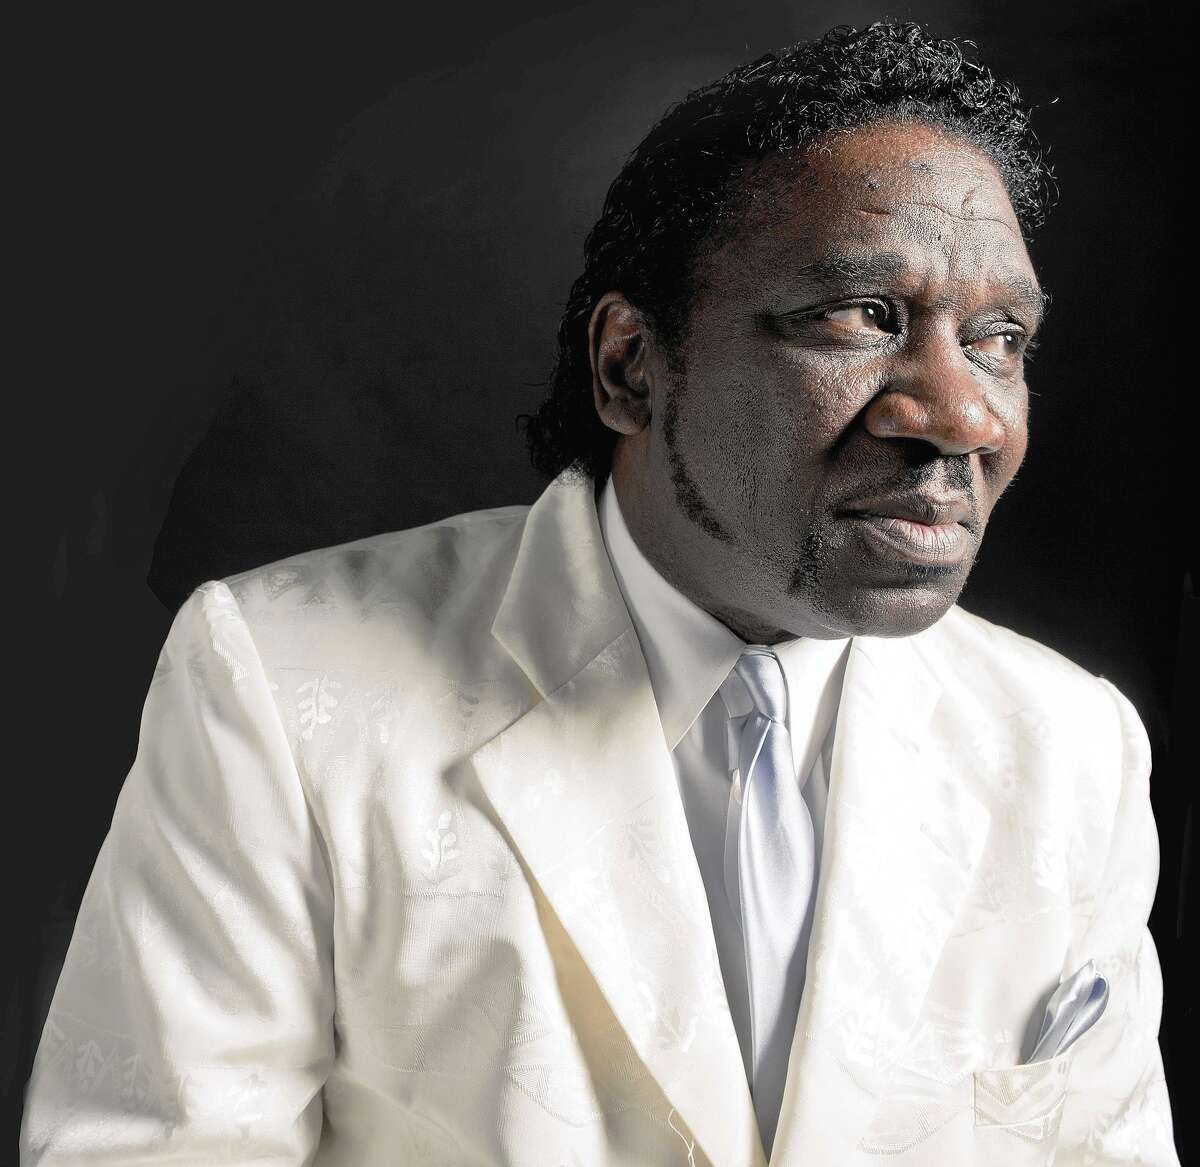 Bluesman and son of the legendary Muddy Waters, Mud Morganfield, will make his debut concert appearance at Bridge Street Live in Collinsville on Friday, July 13.